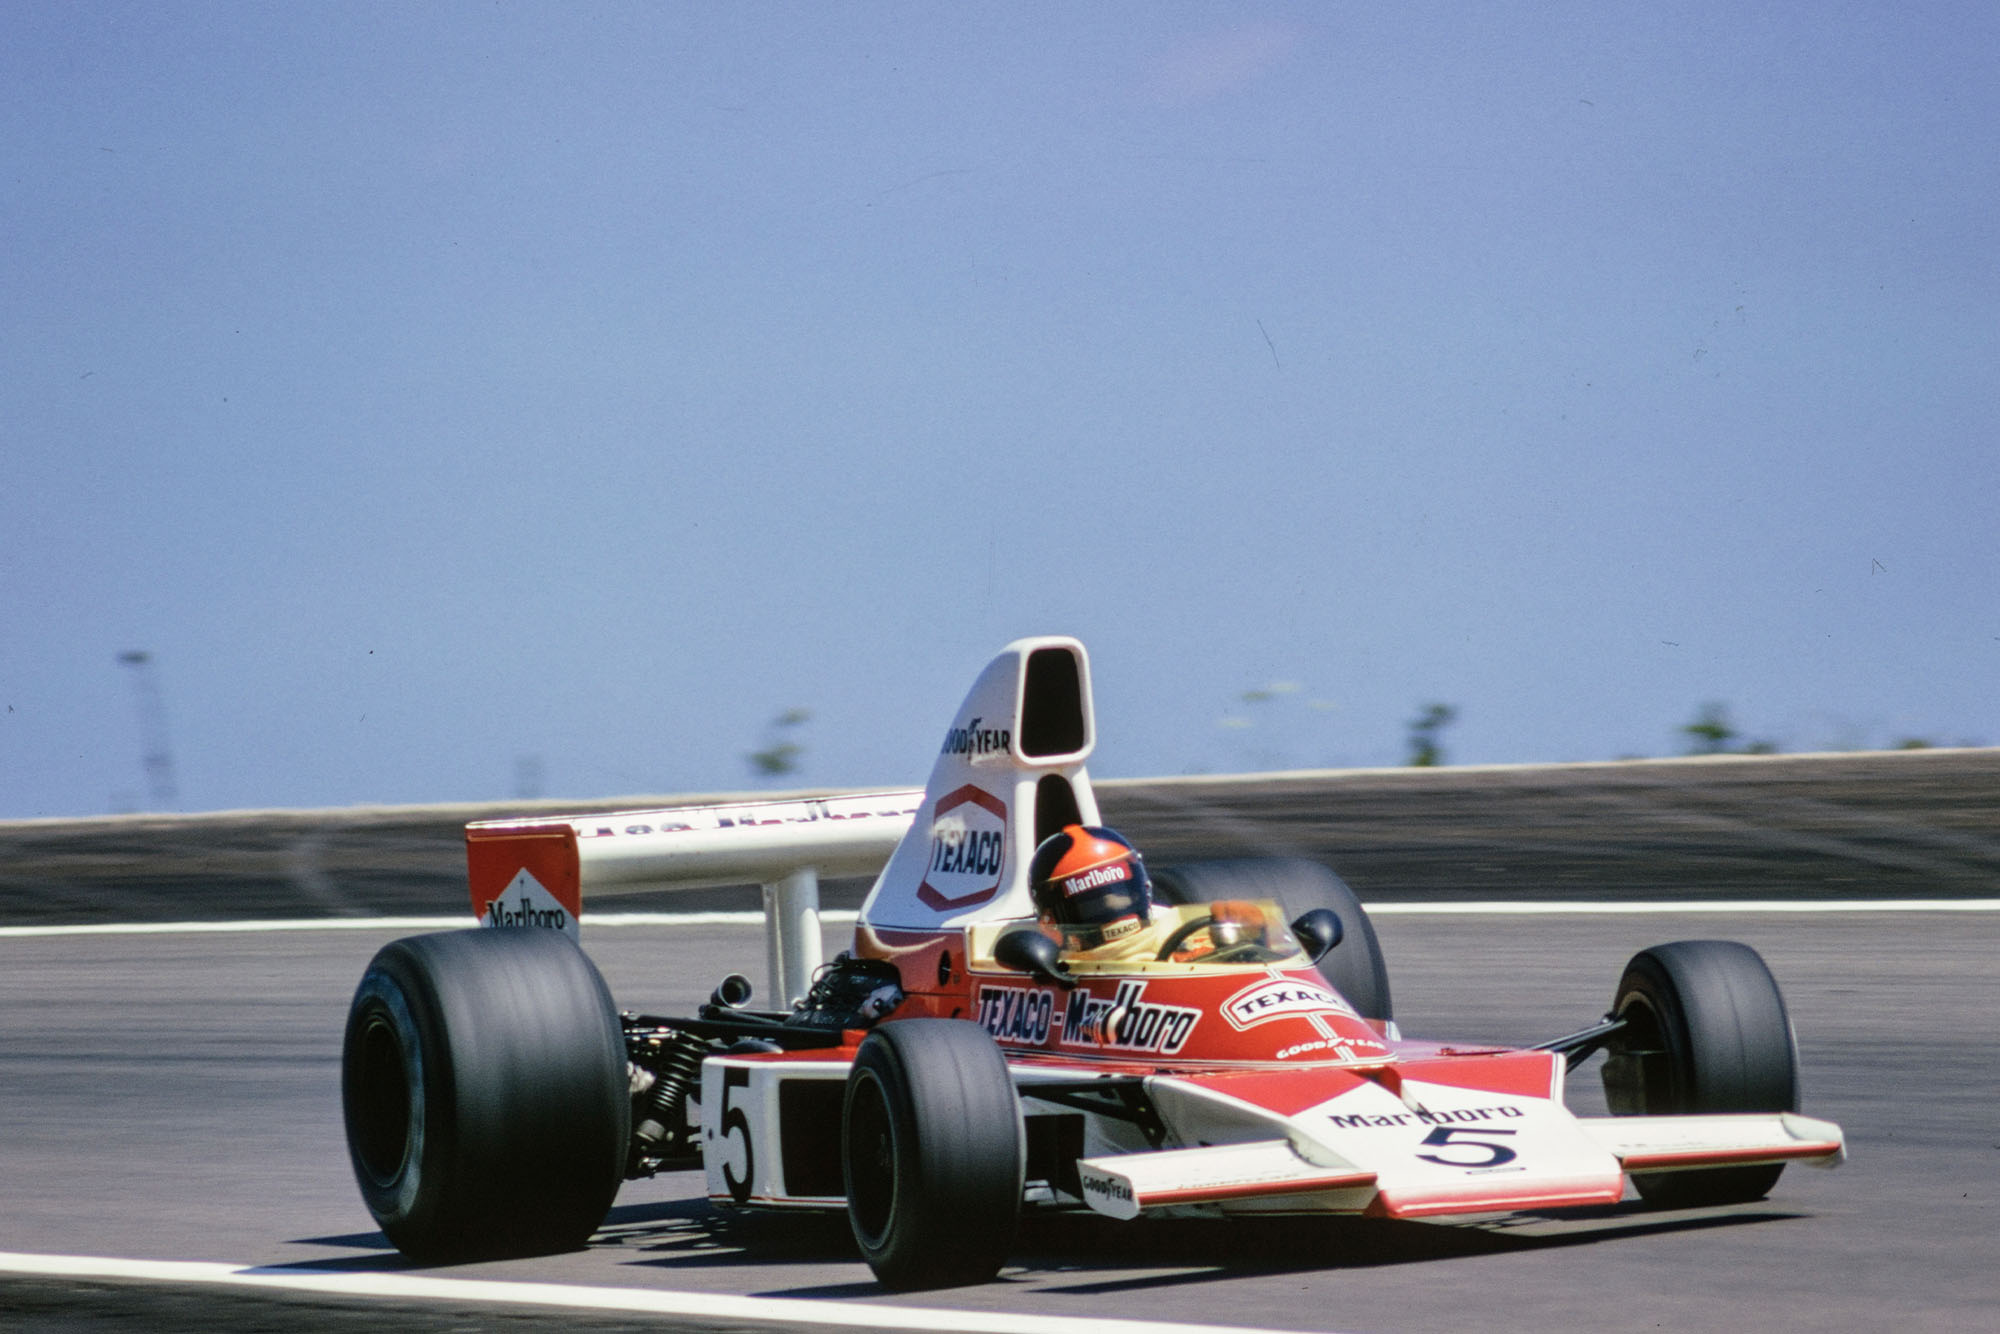 Emerson Fittipaldi driving for McLaren at the 1974 French Grand Prix, Paul Ricard.